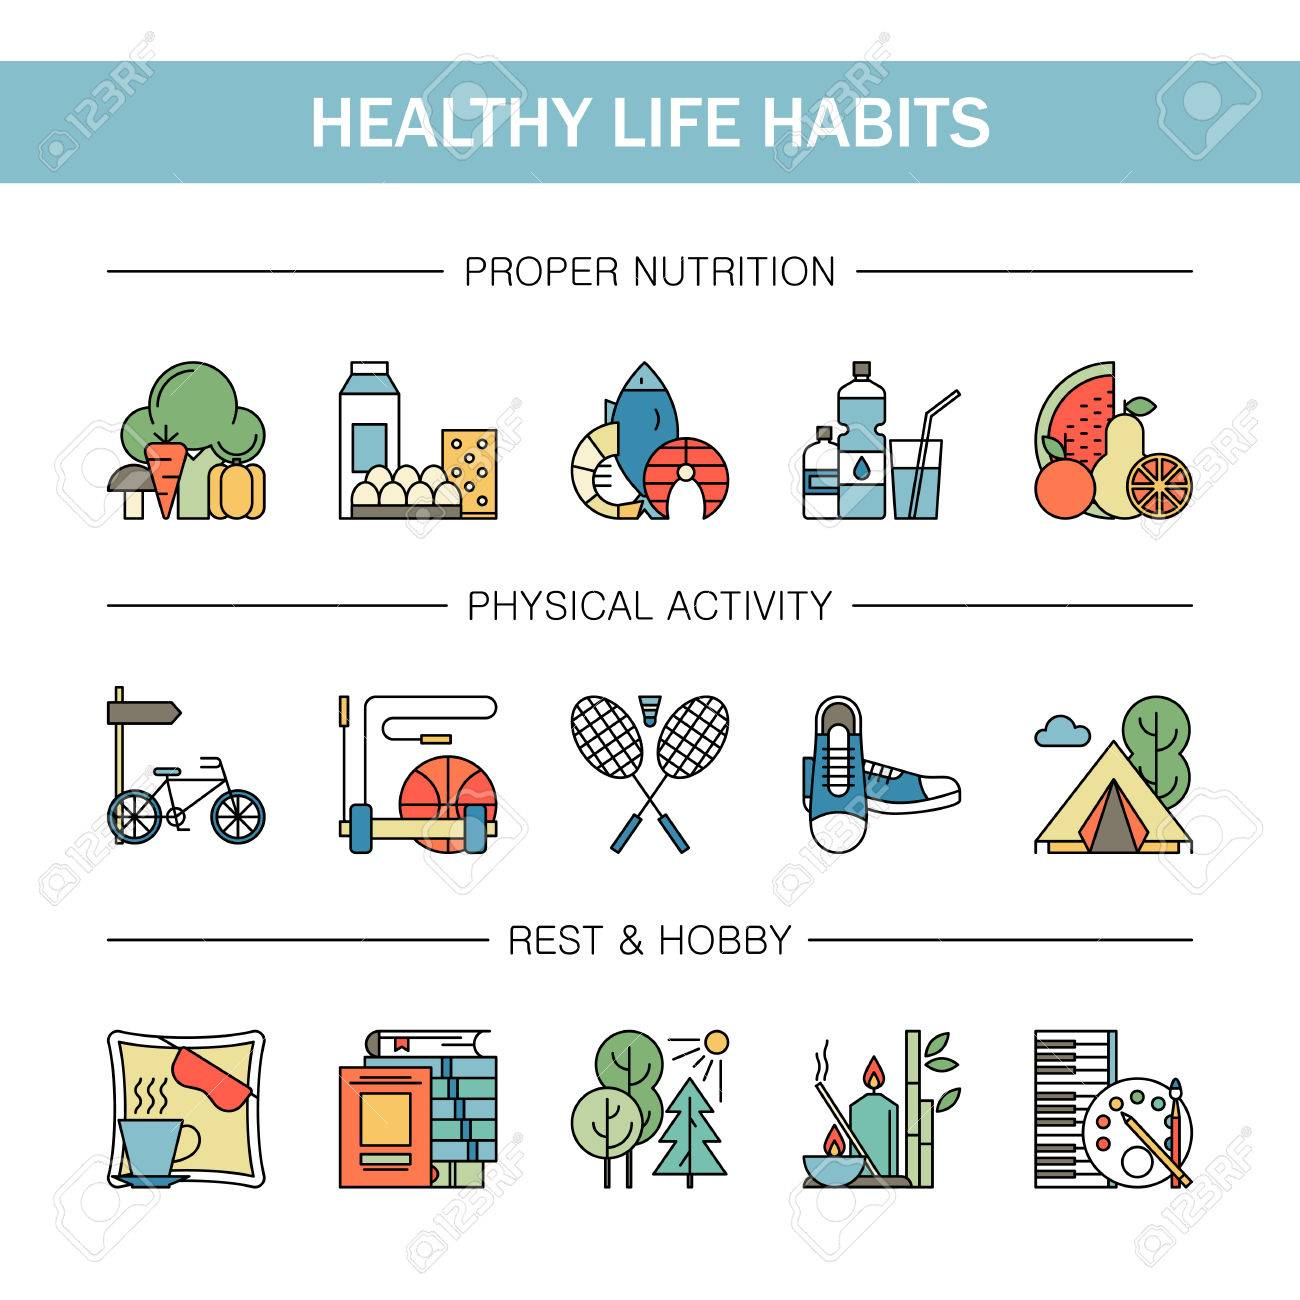 Healthy Lifestyle Habits Colorful Line Vector Icons Isolated Royalty Free Cliparts Vectors And Stock Illustration Image 72393470